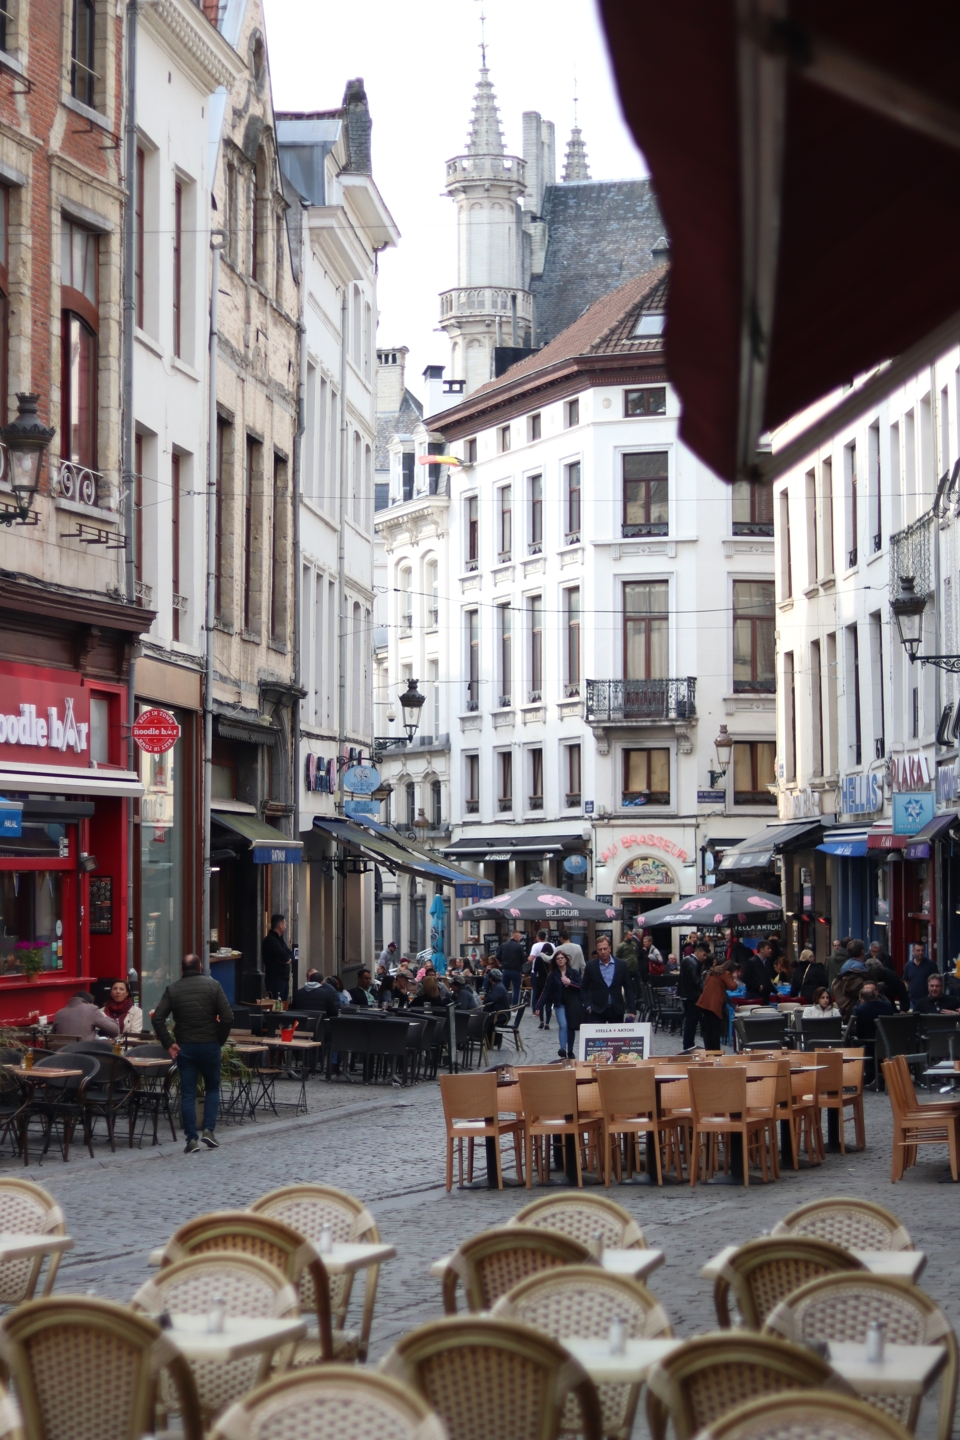 Street in Brussel, with many cafes and restaurants